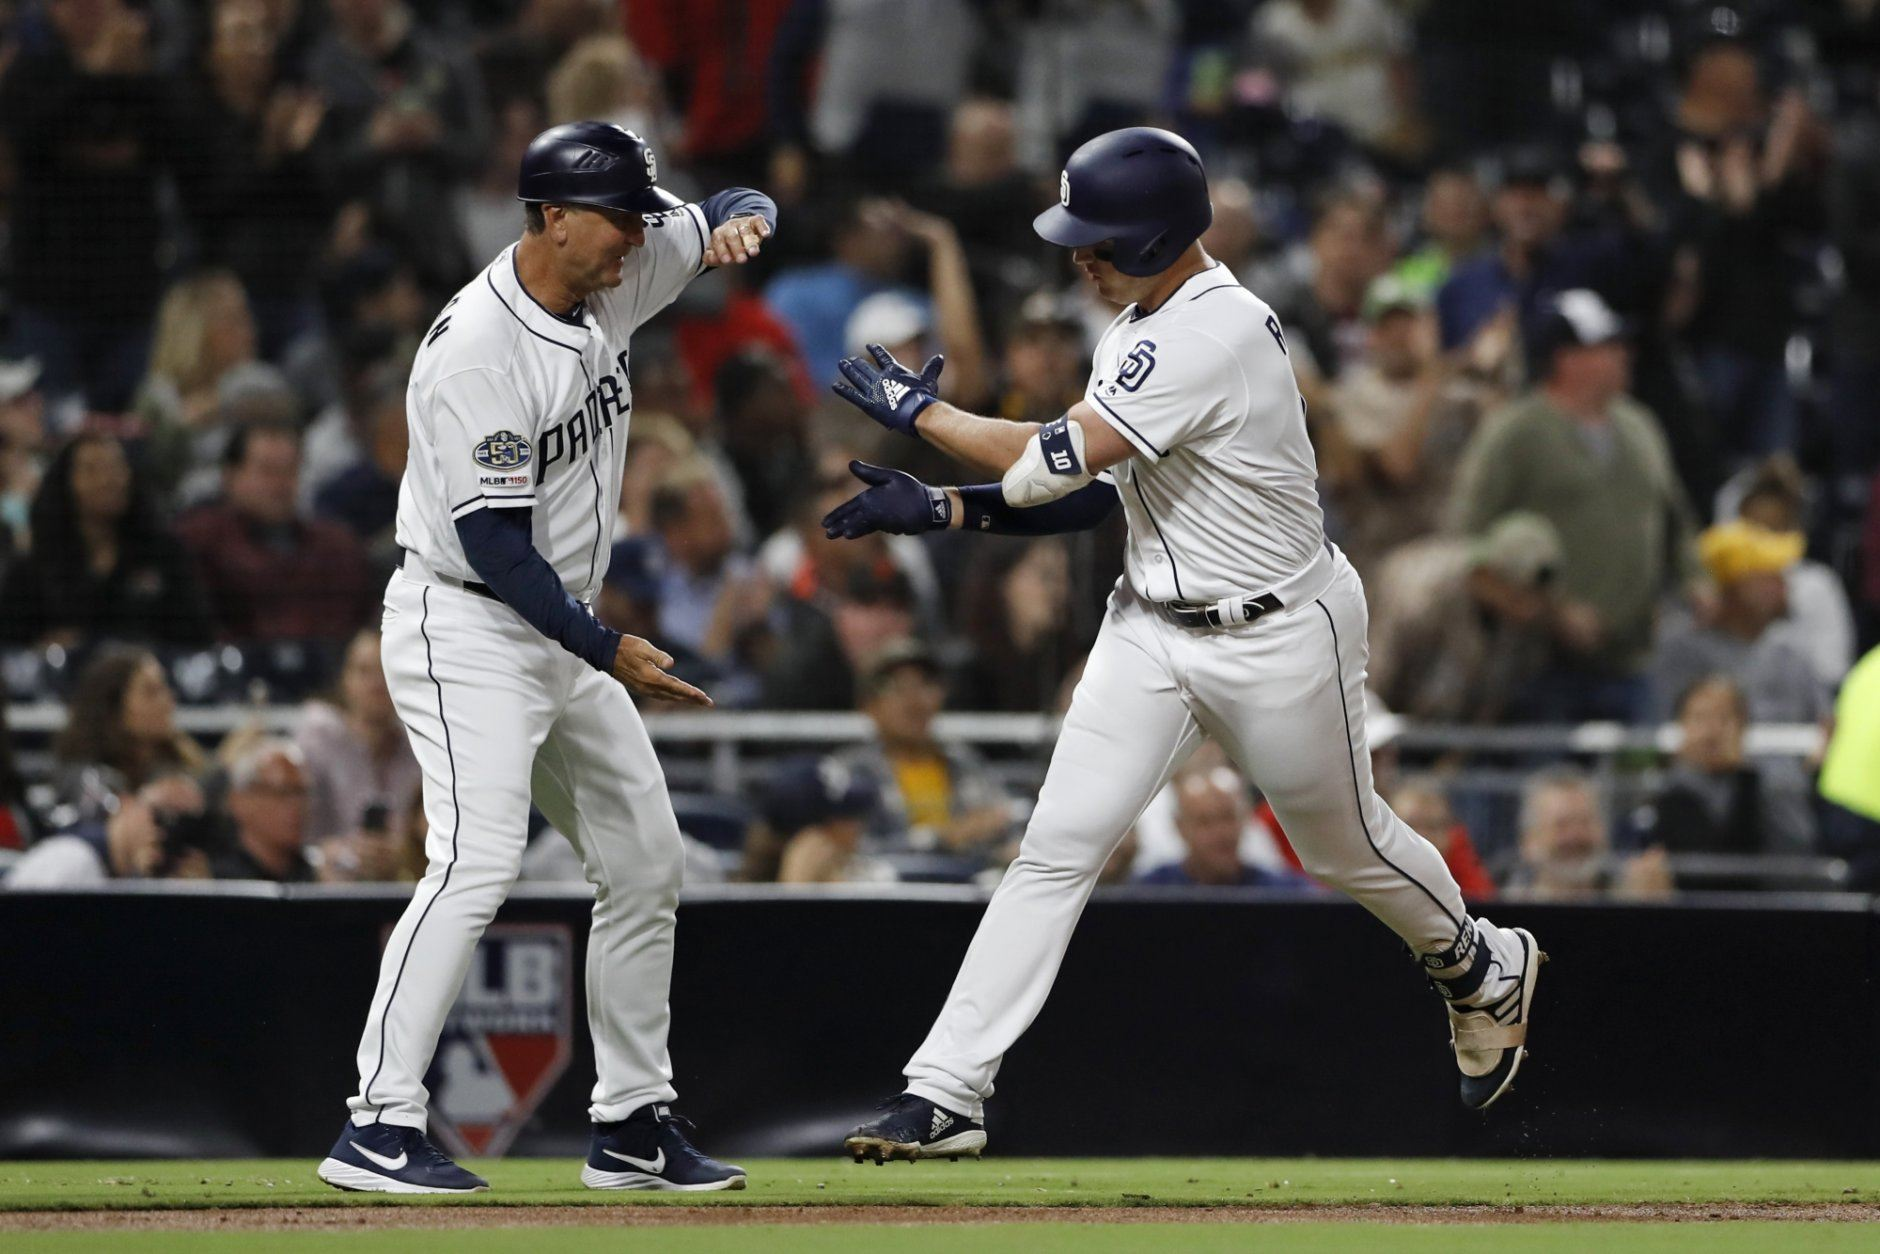 San Diego Padres' Hunter Renfroe, right, is greeted by third base coach Glenn Hoffman after hitting a two-run home run during the second inning of the team's baseball game against the Washington Nationals on Thursday, June 6, 2019, in San Diego. (AP Photo/Gregory Bull)